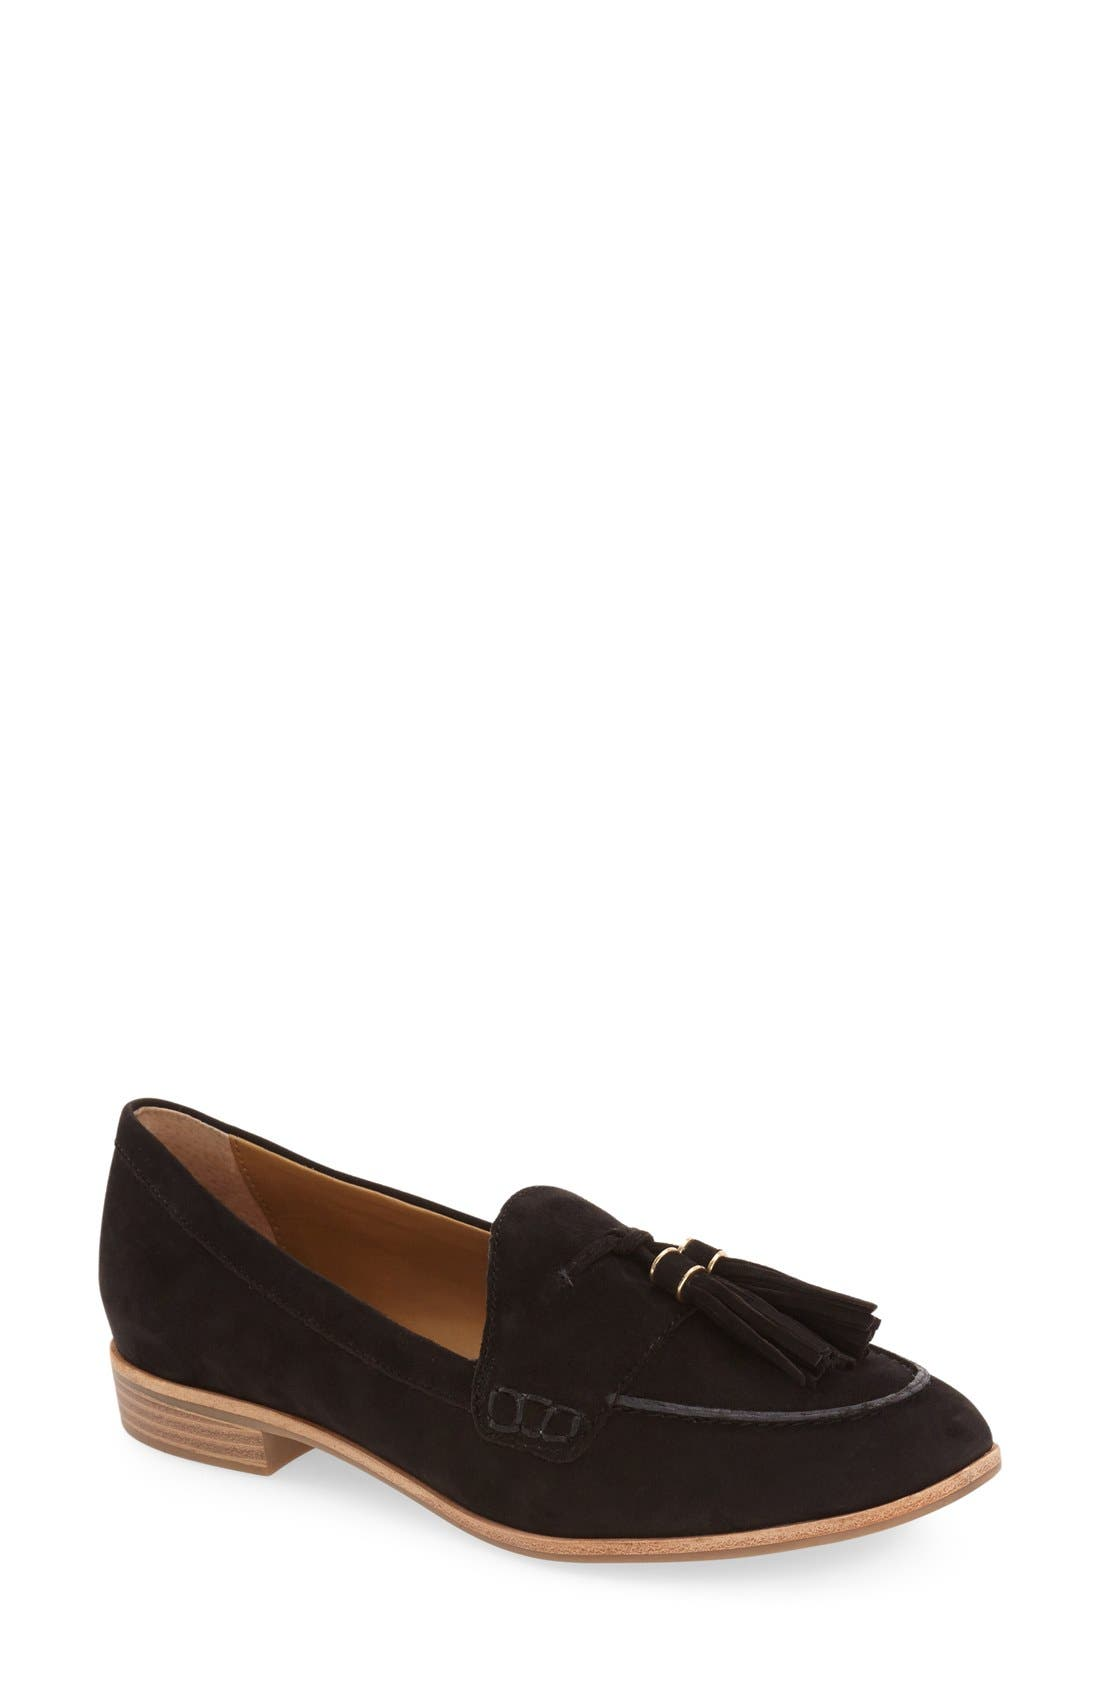 'Estelle' Tassel Loafer,                         Main,                         color, 001